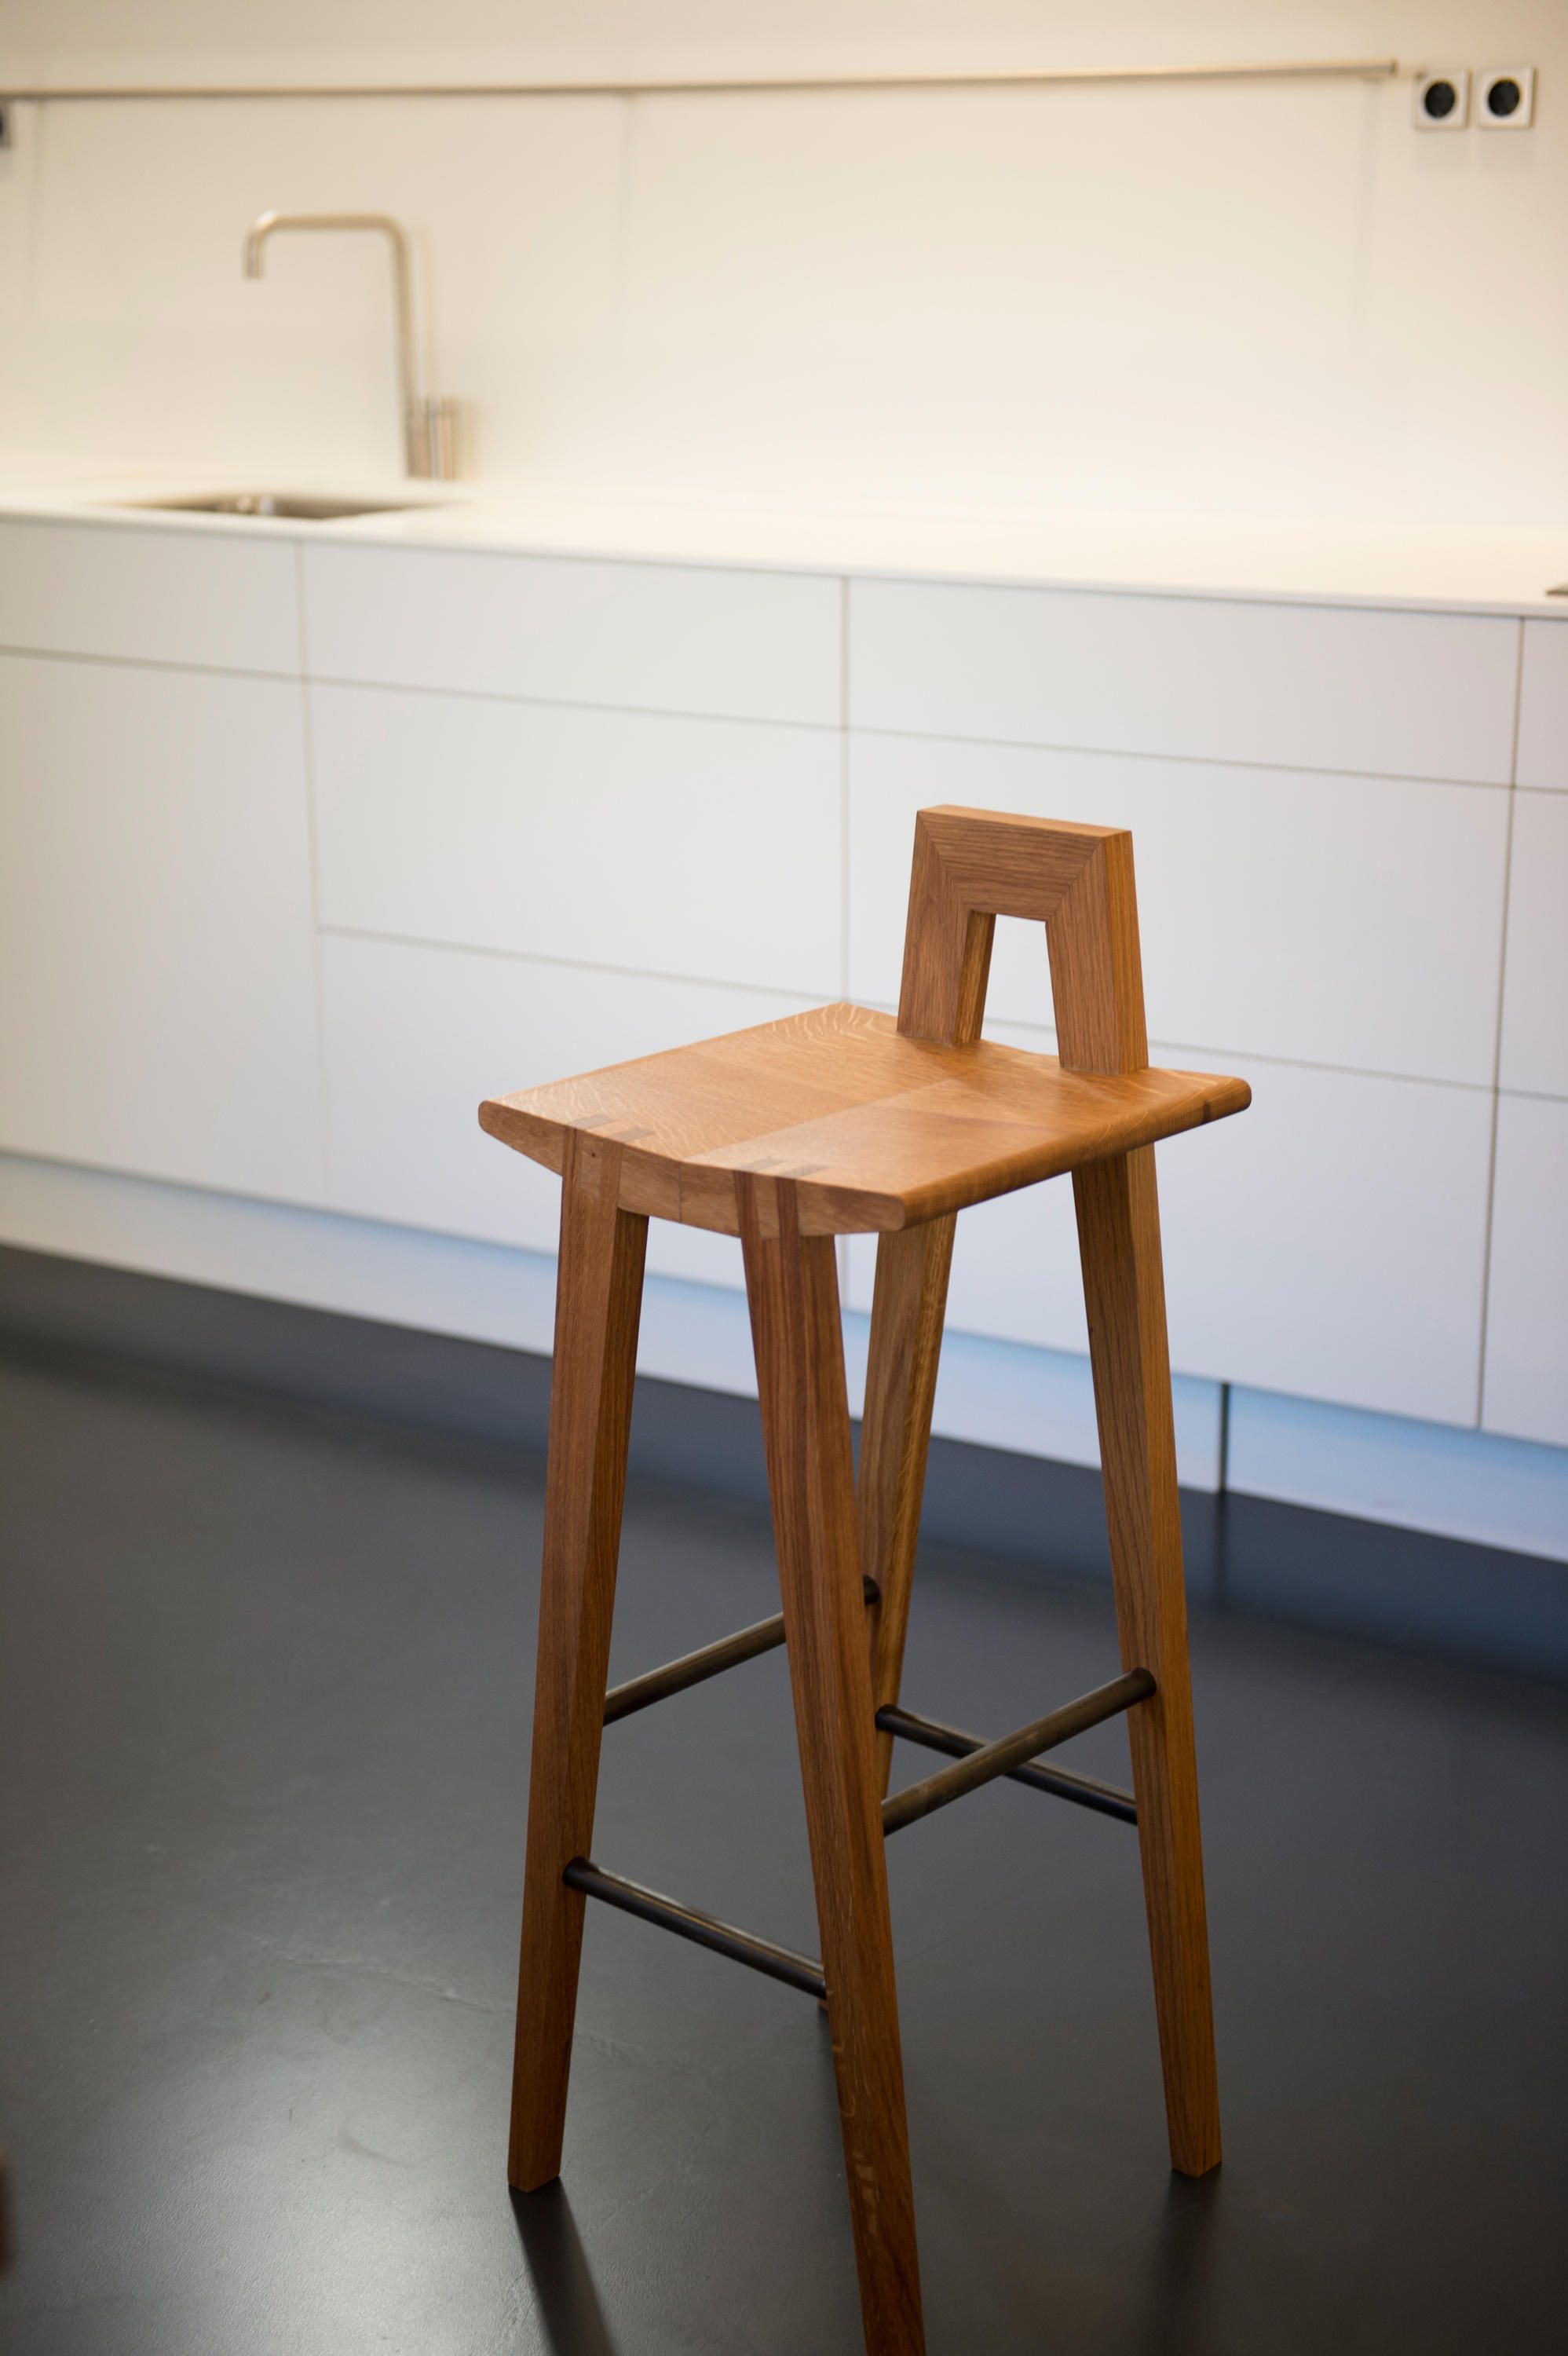 Grable High Stool Designer Counter Stools From Qowood All